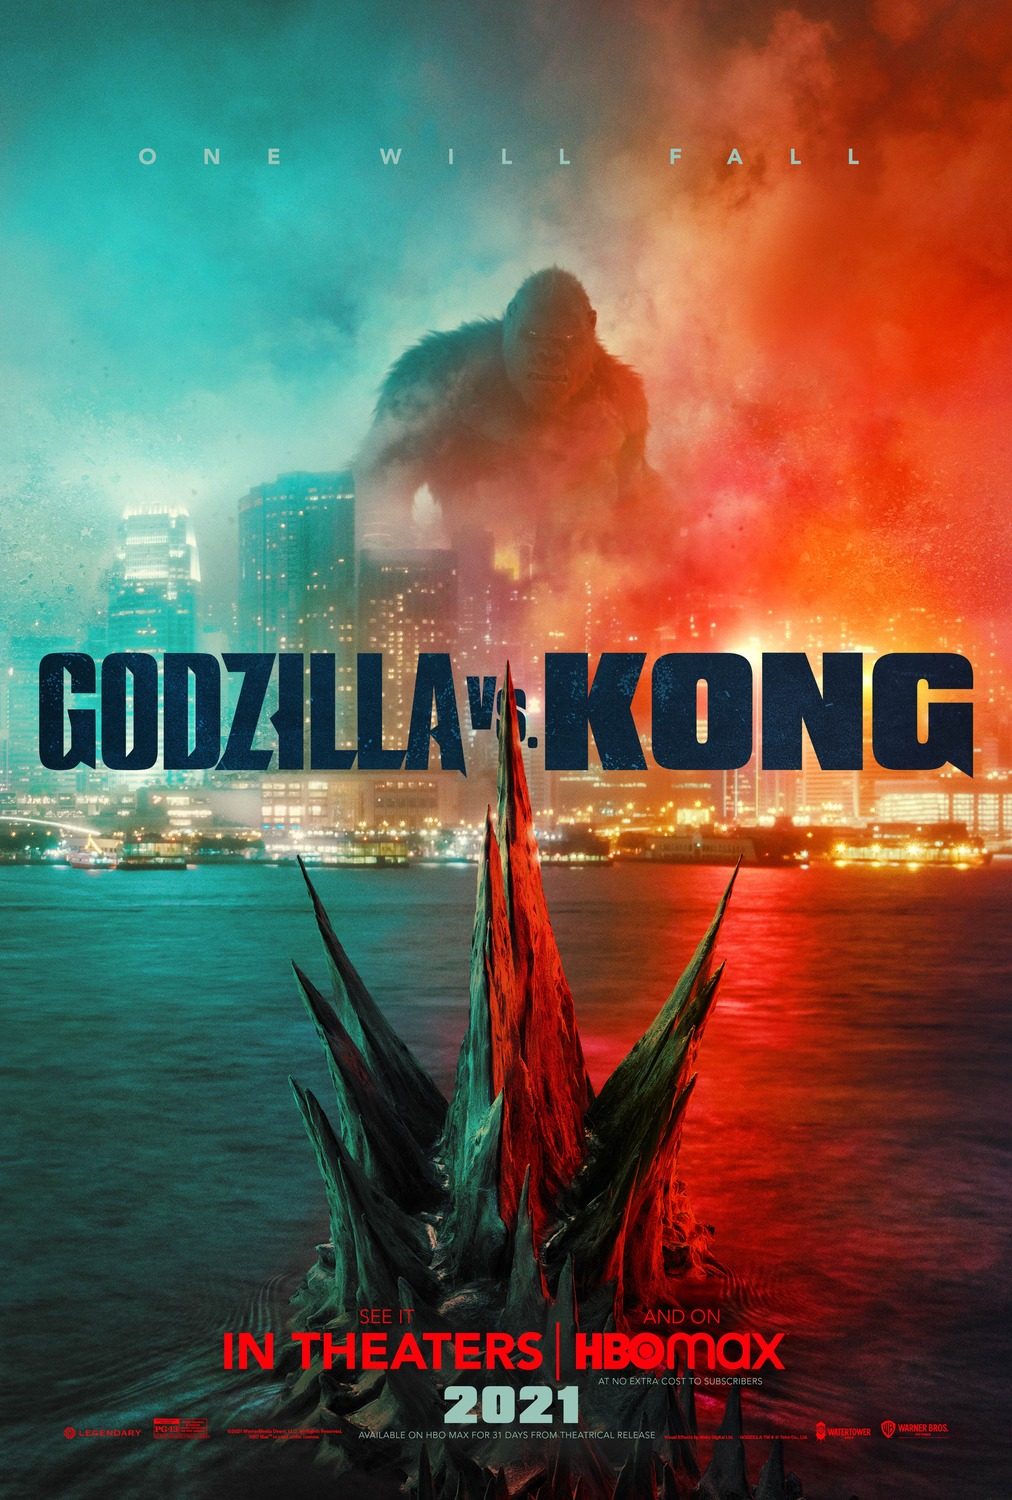 GODZILLA vs. KONG (2021) (TRUE WEB-DL + DTS / DD+5.1 Original Audios) – [2160p |1080p | 720p – (Tamil + Telugu + Hindi + Eng) – ESub